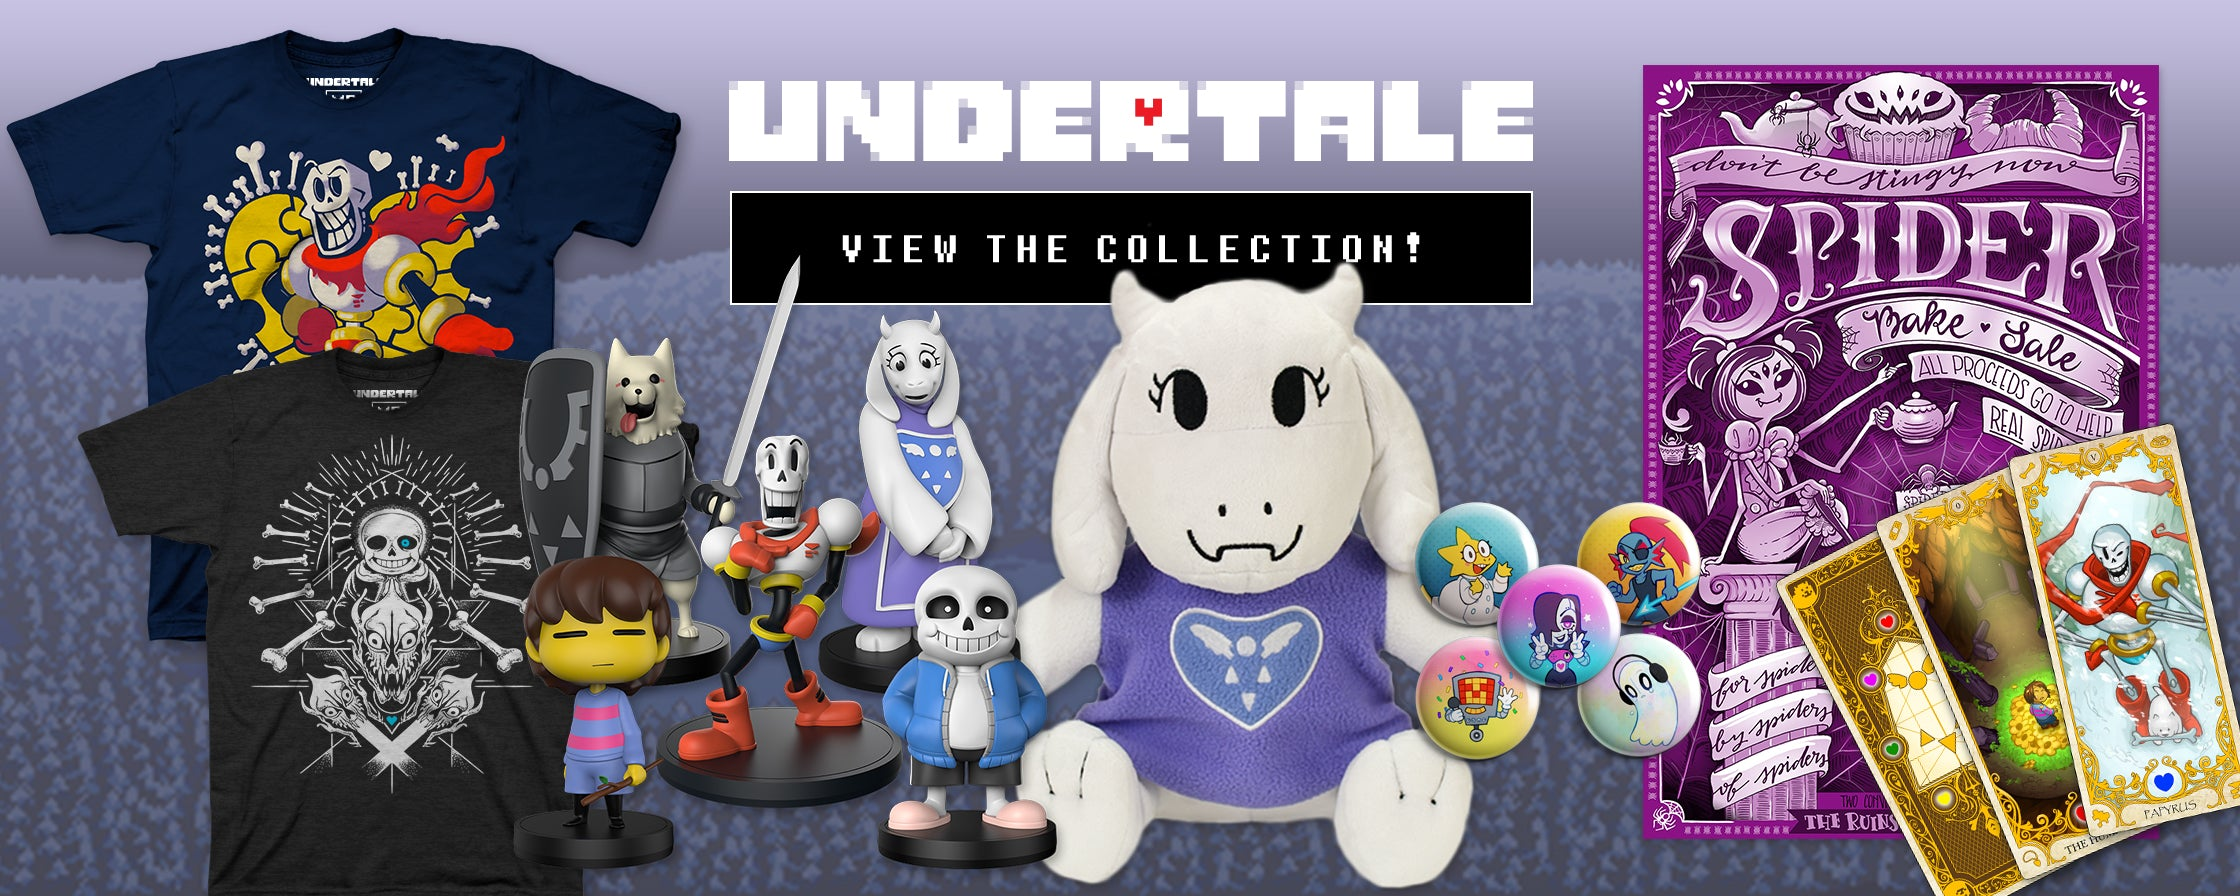 official undertale merchandise now up for preorder neogaf